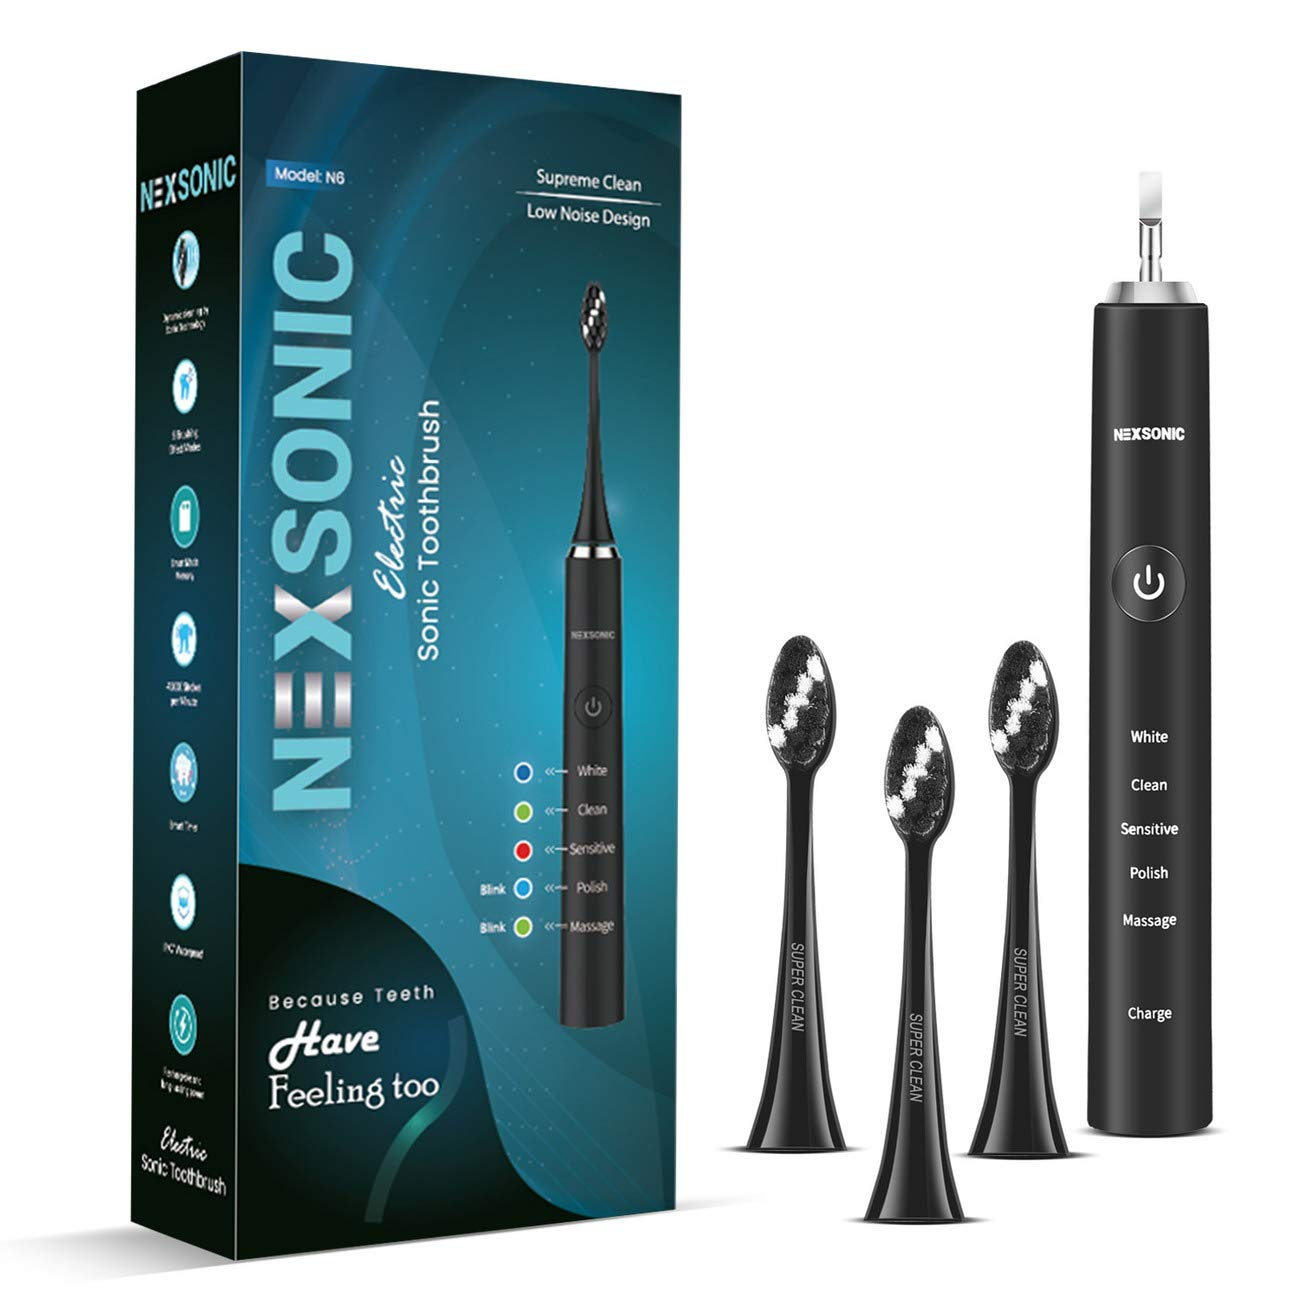 Sonic Electric Toothbrush for Adults – USB Rechargeable Battery Electronic Tooth Brush with 3 Replacement Soft Brush Heads 5 Models Travel Automatic Power Gum Toothbrushes Dentist Recommend Black